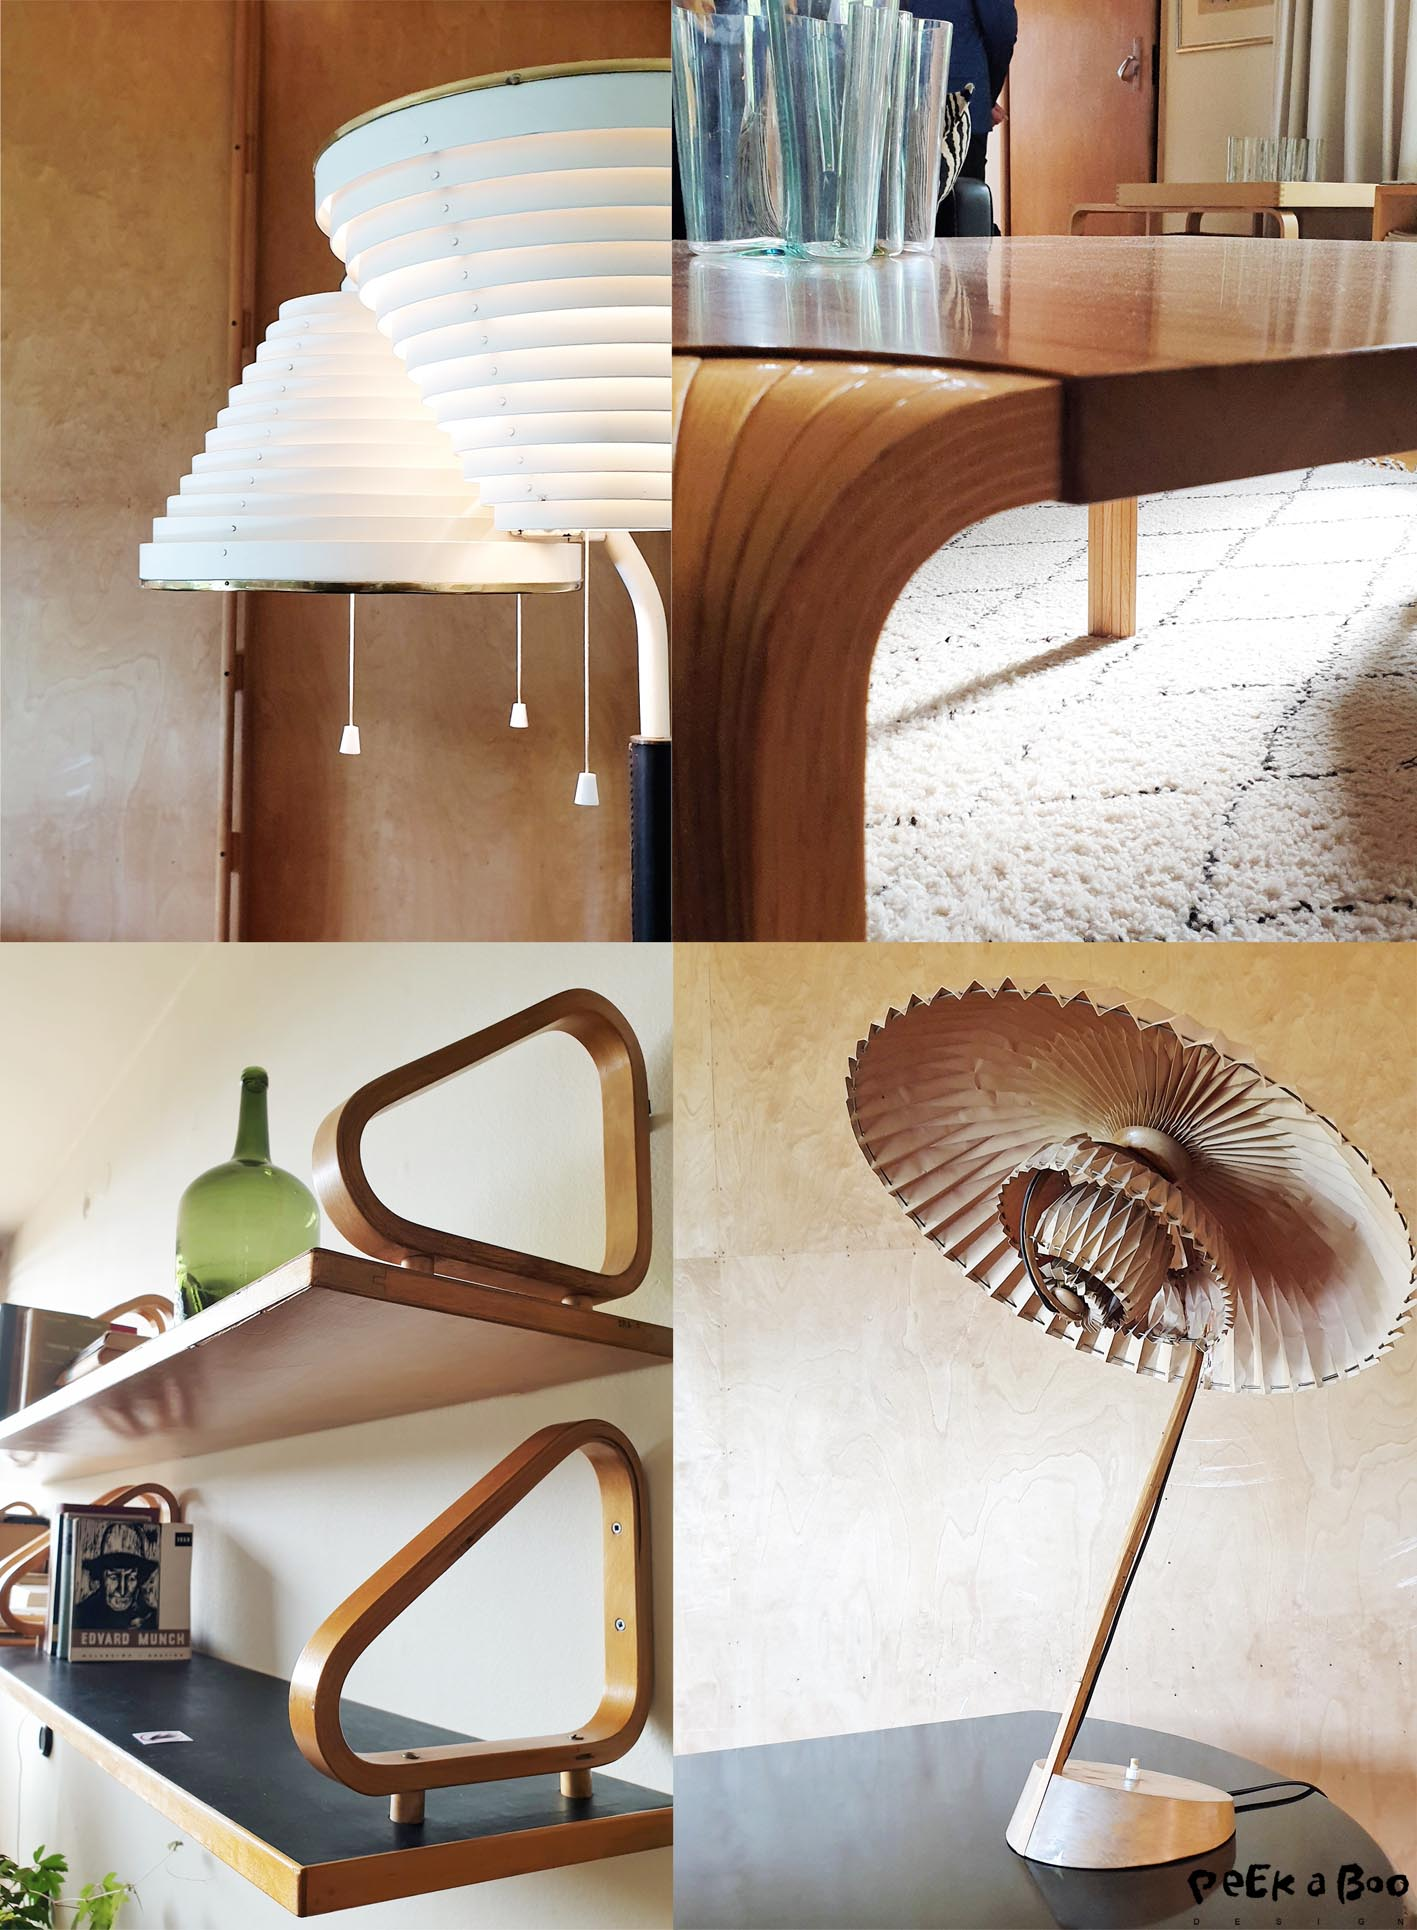 Details from the home of Alvar and Aino Aalto.